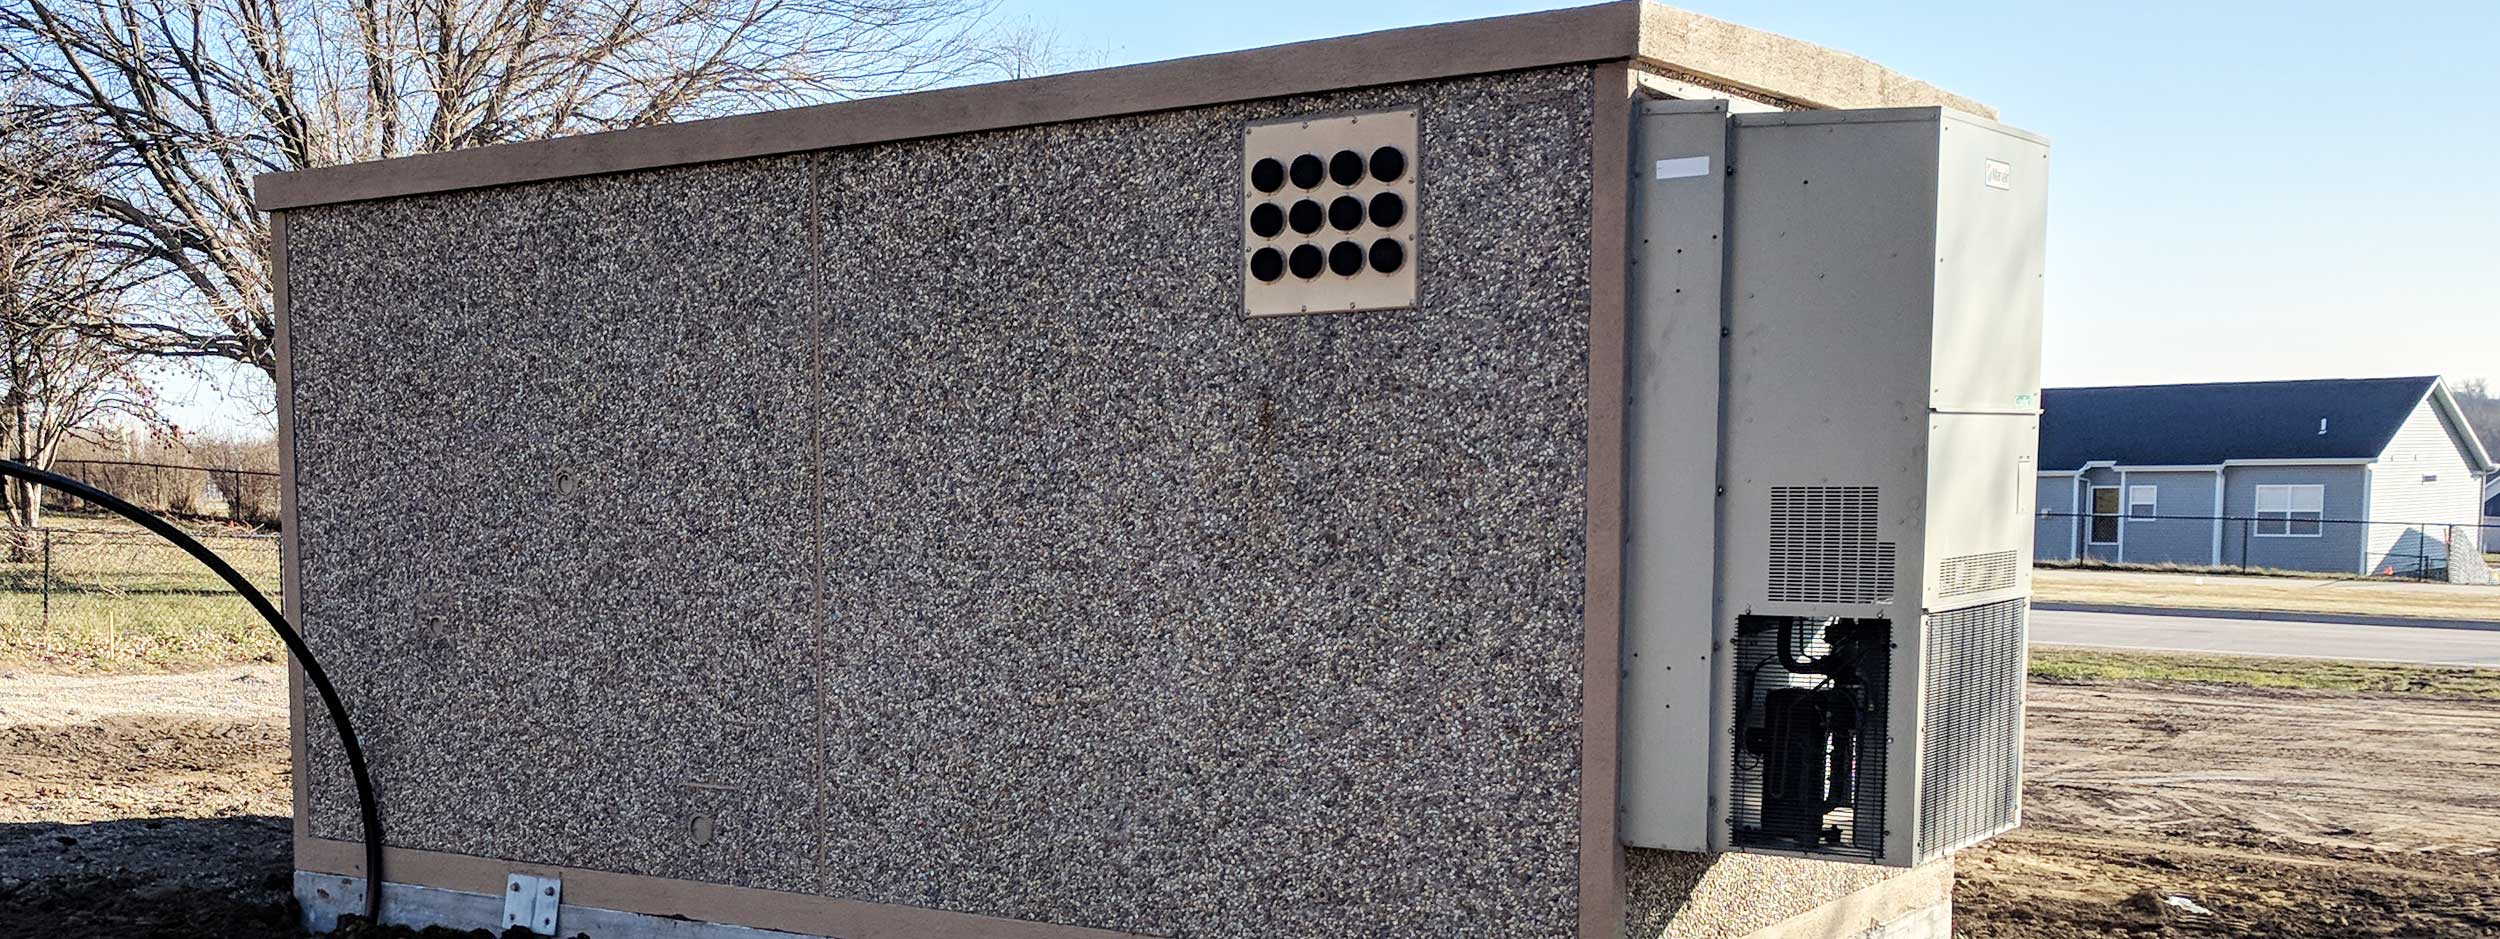 we-are-looking-for-used-telecom-shelters